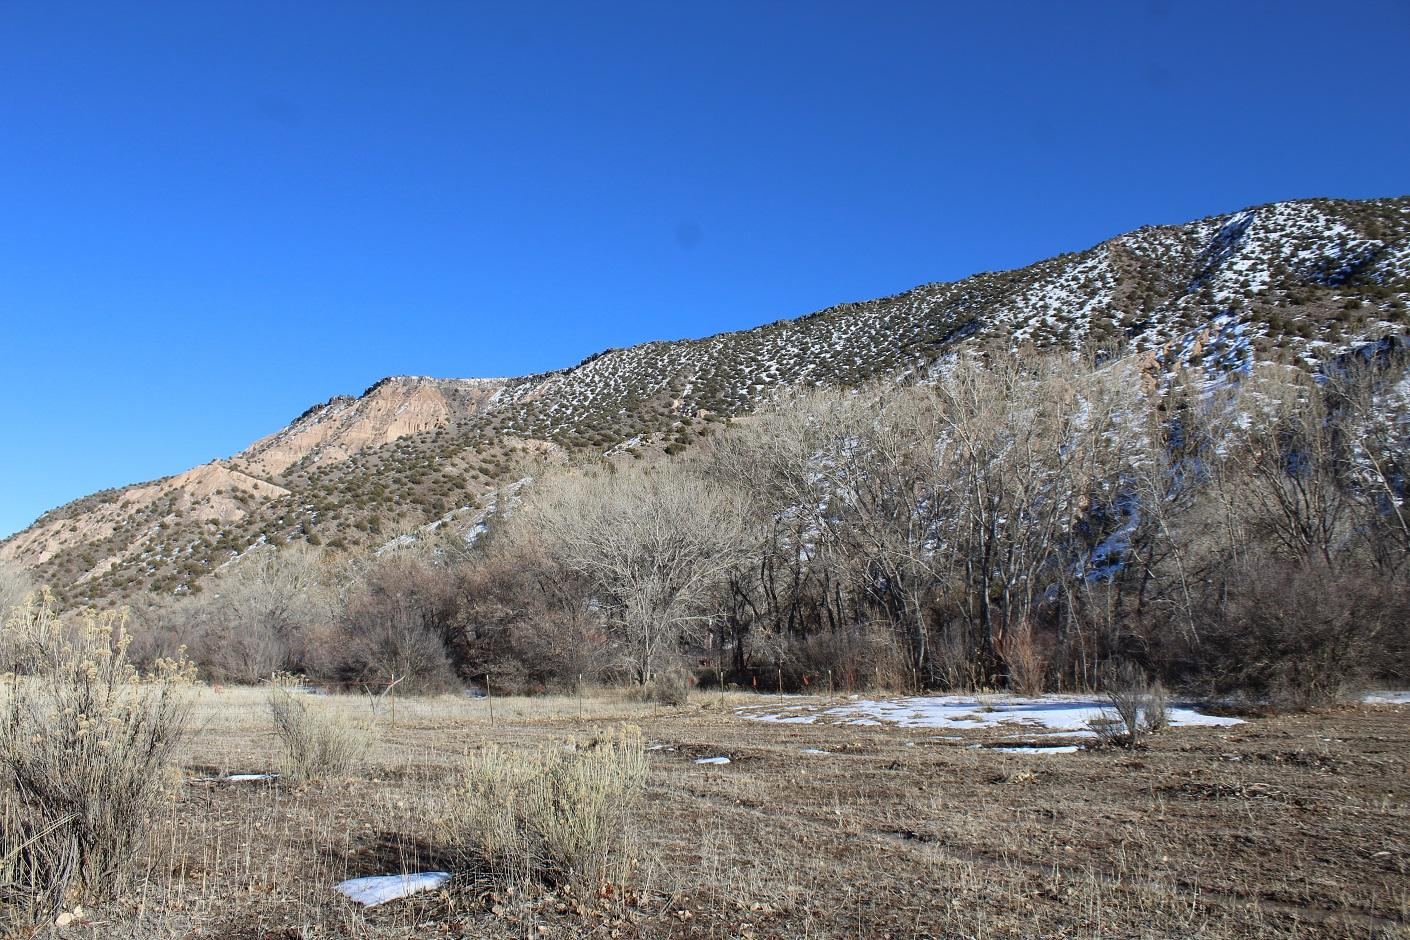 TRACT B-2 US HWY 285, Ojo Caliente, NM 87549